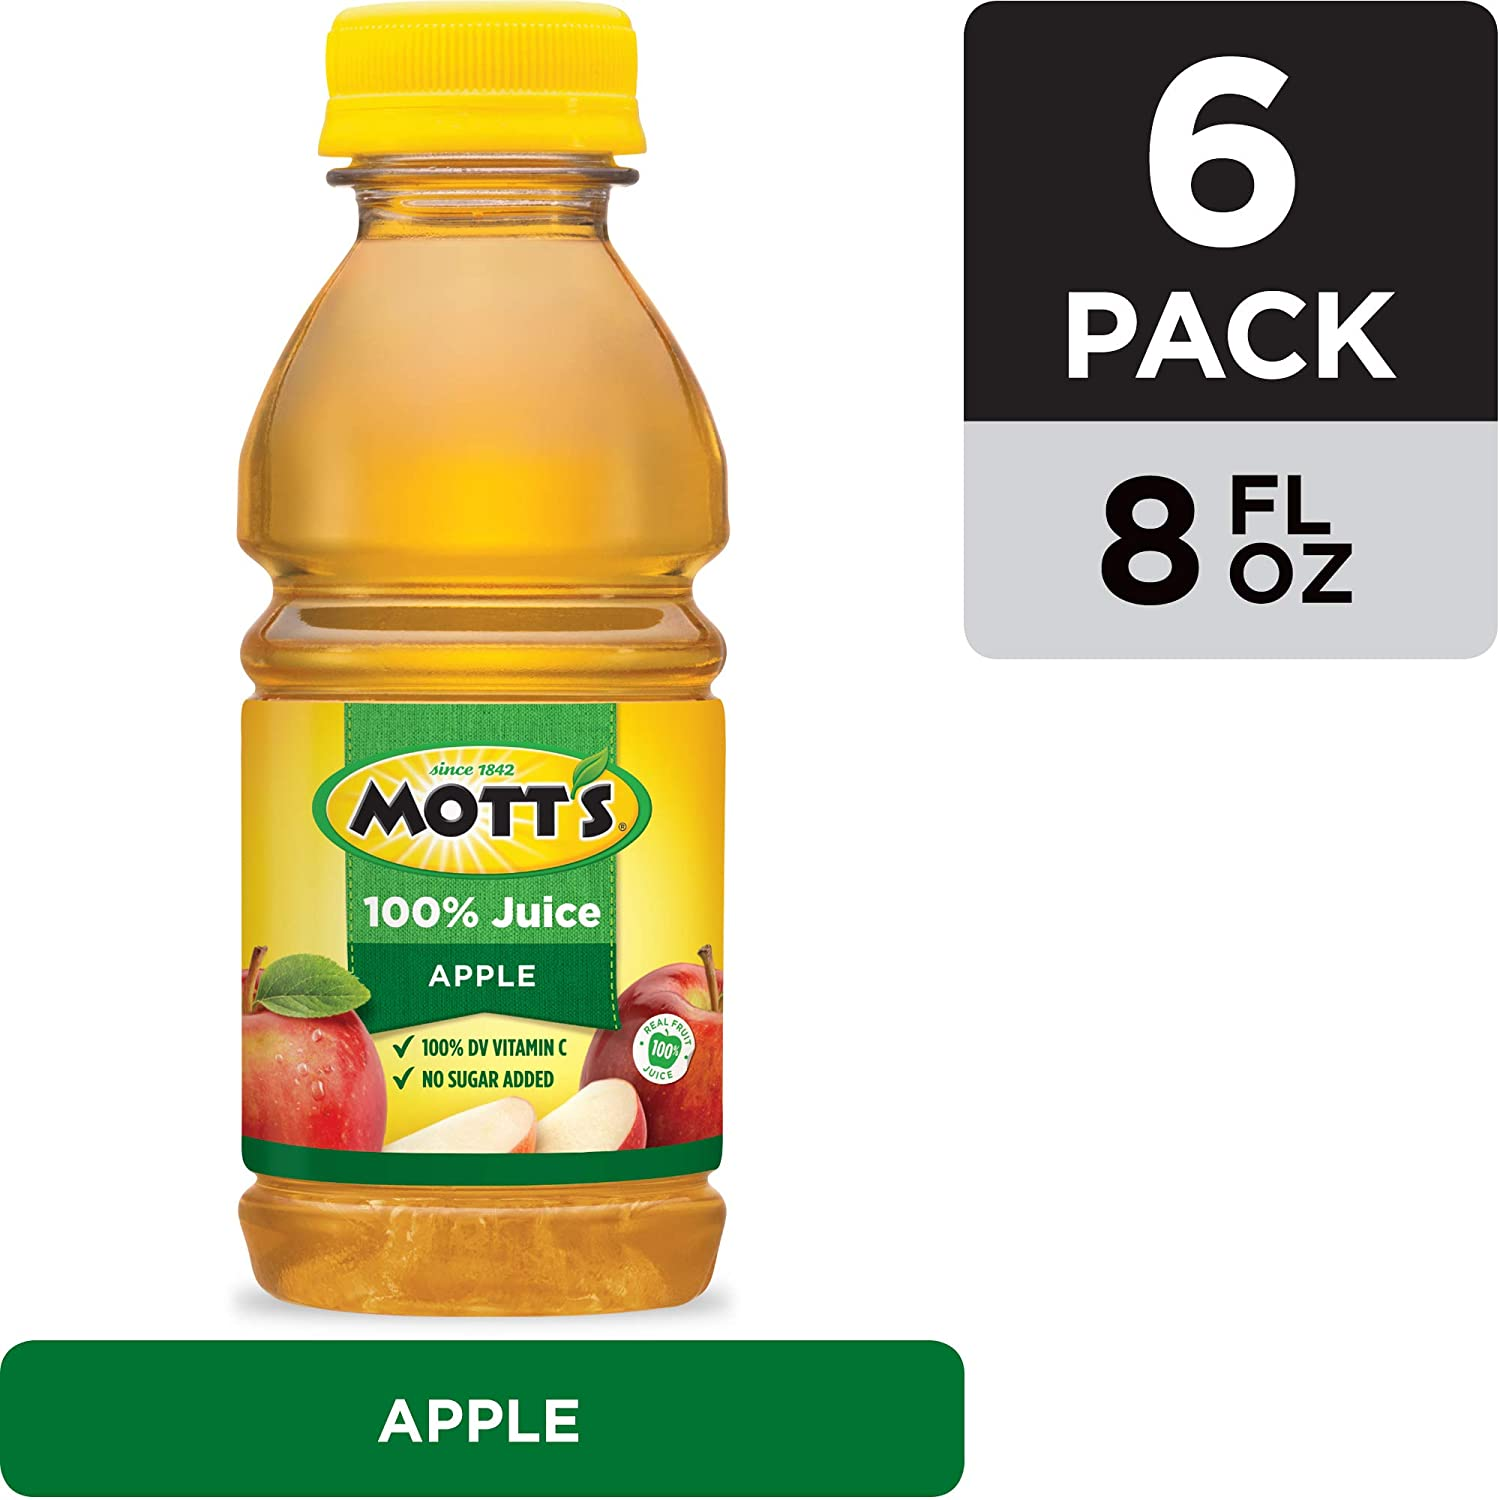 Mott's Apple Juice, 8 oz (Pack of 6)